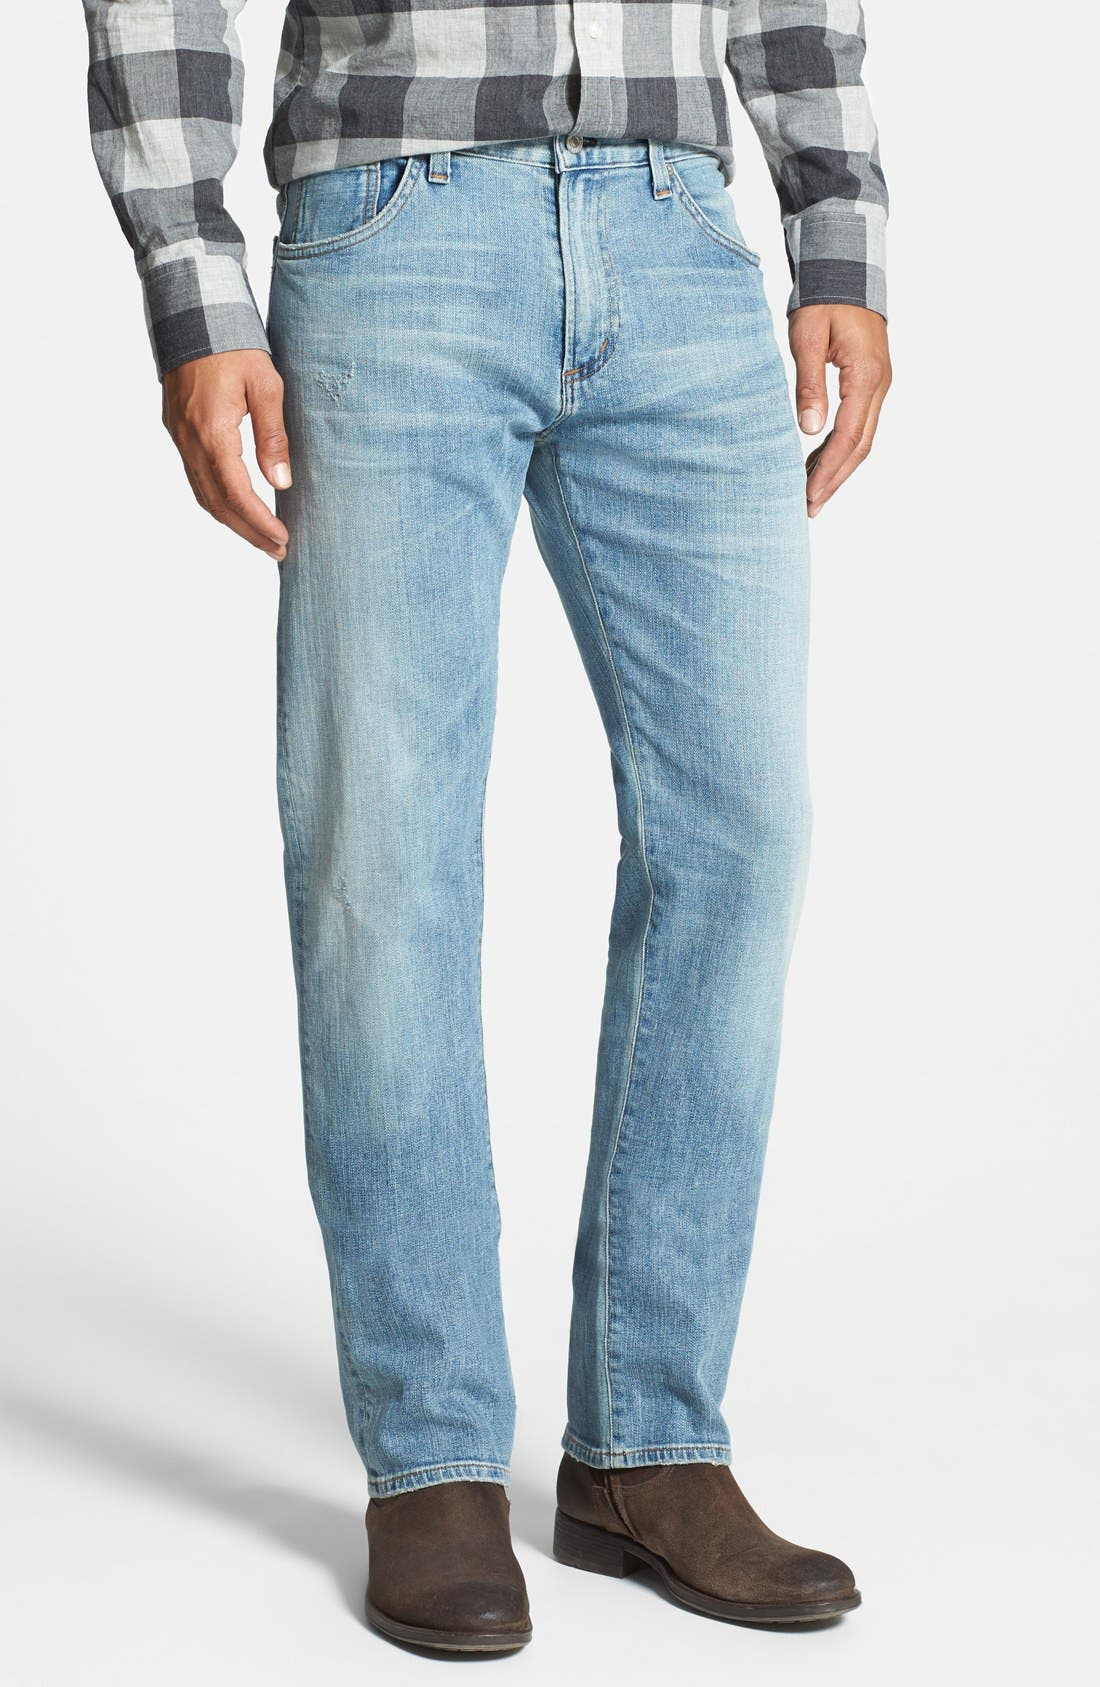 CITIZENS OF HUMANITY, 'Core' Slim Straight Leg Jeans, Main thumbnail 1, color, 458